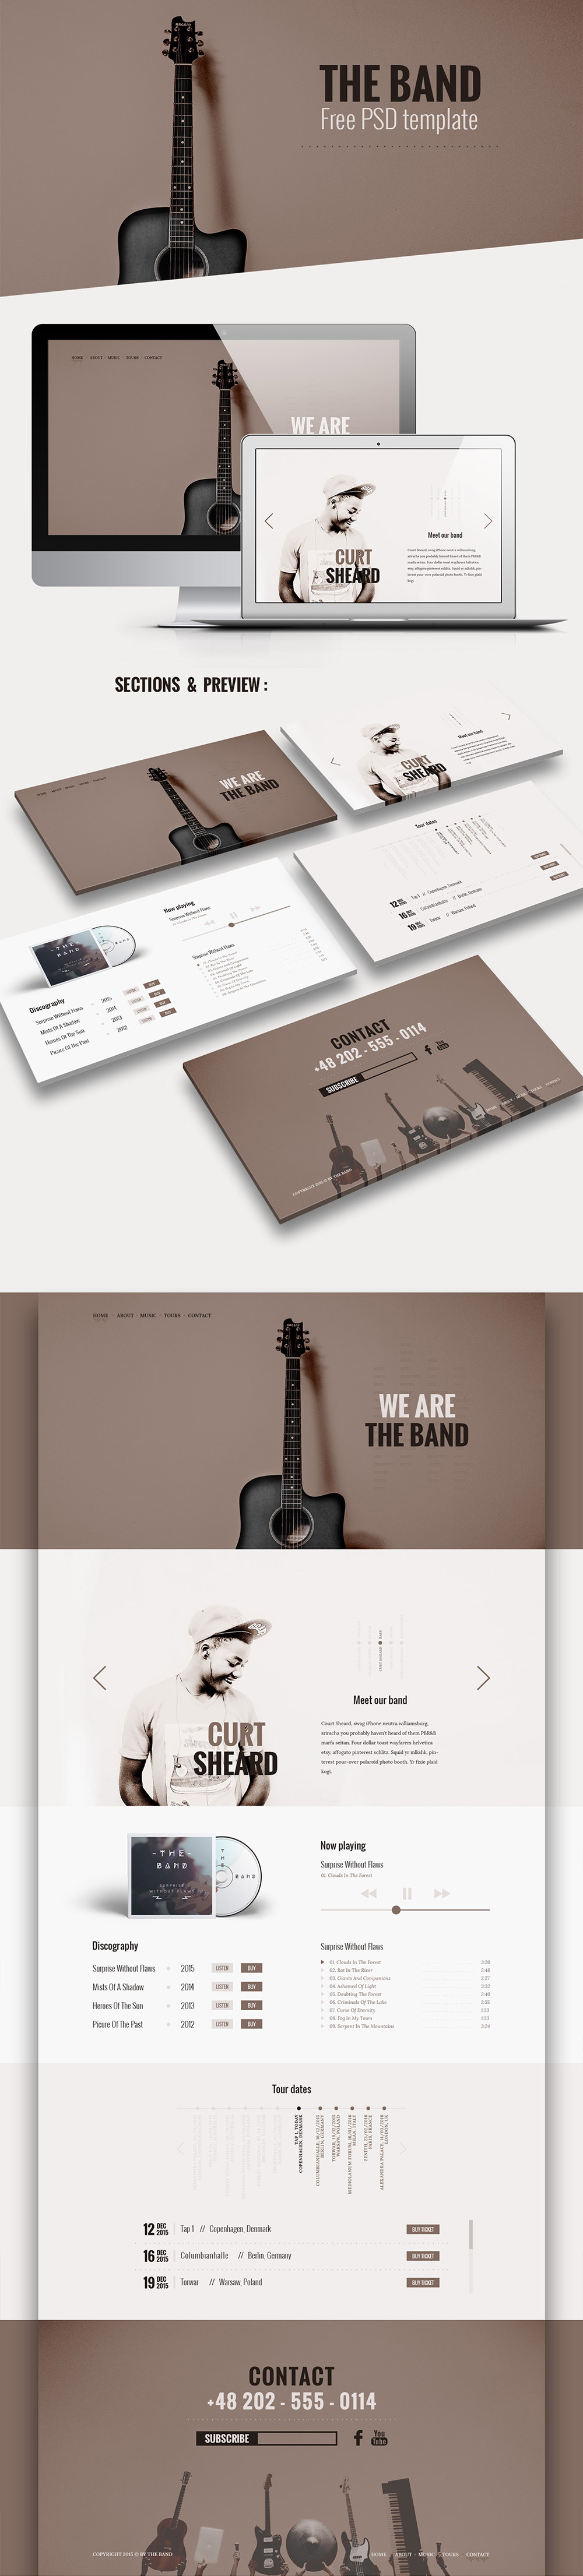 Music Band Website Template Free PSD Download - Download PSD